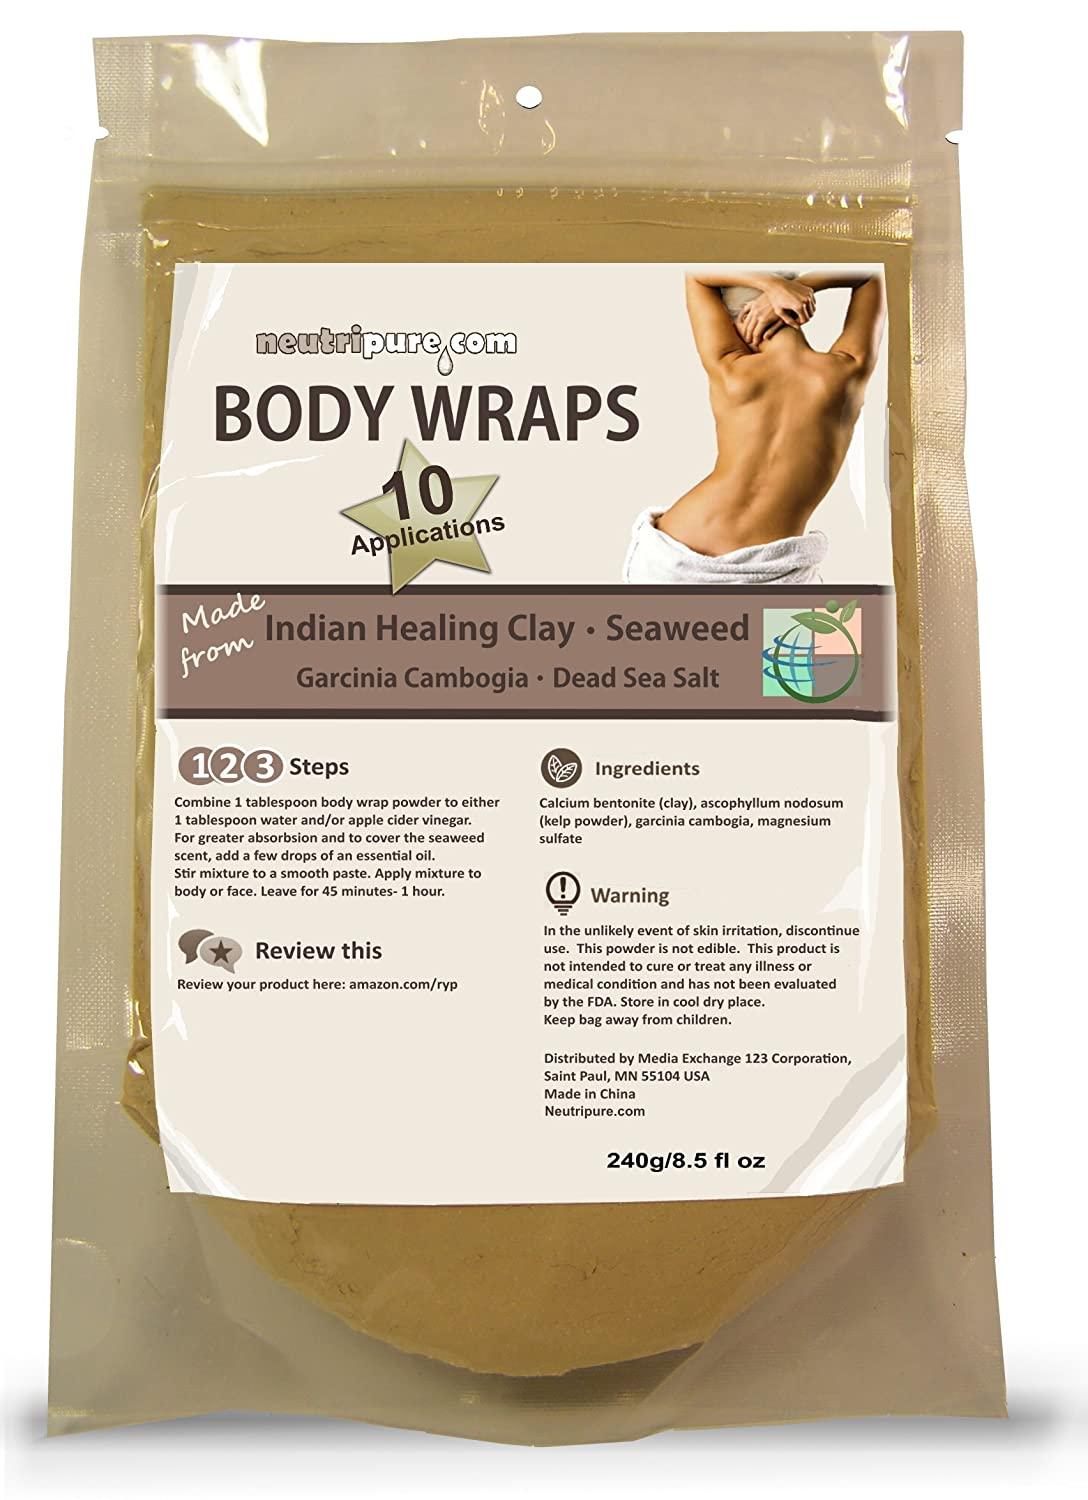 Home Algae Wrap - Features, Step-by-Step Description and Efficiency 77